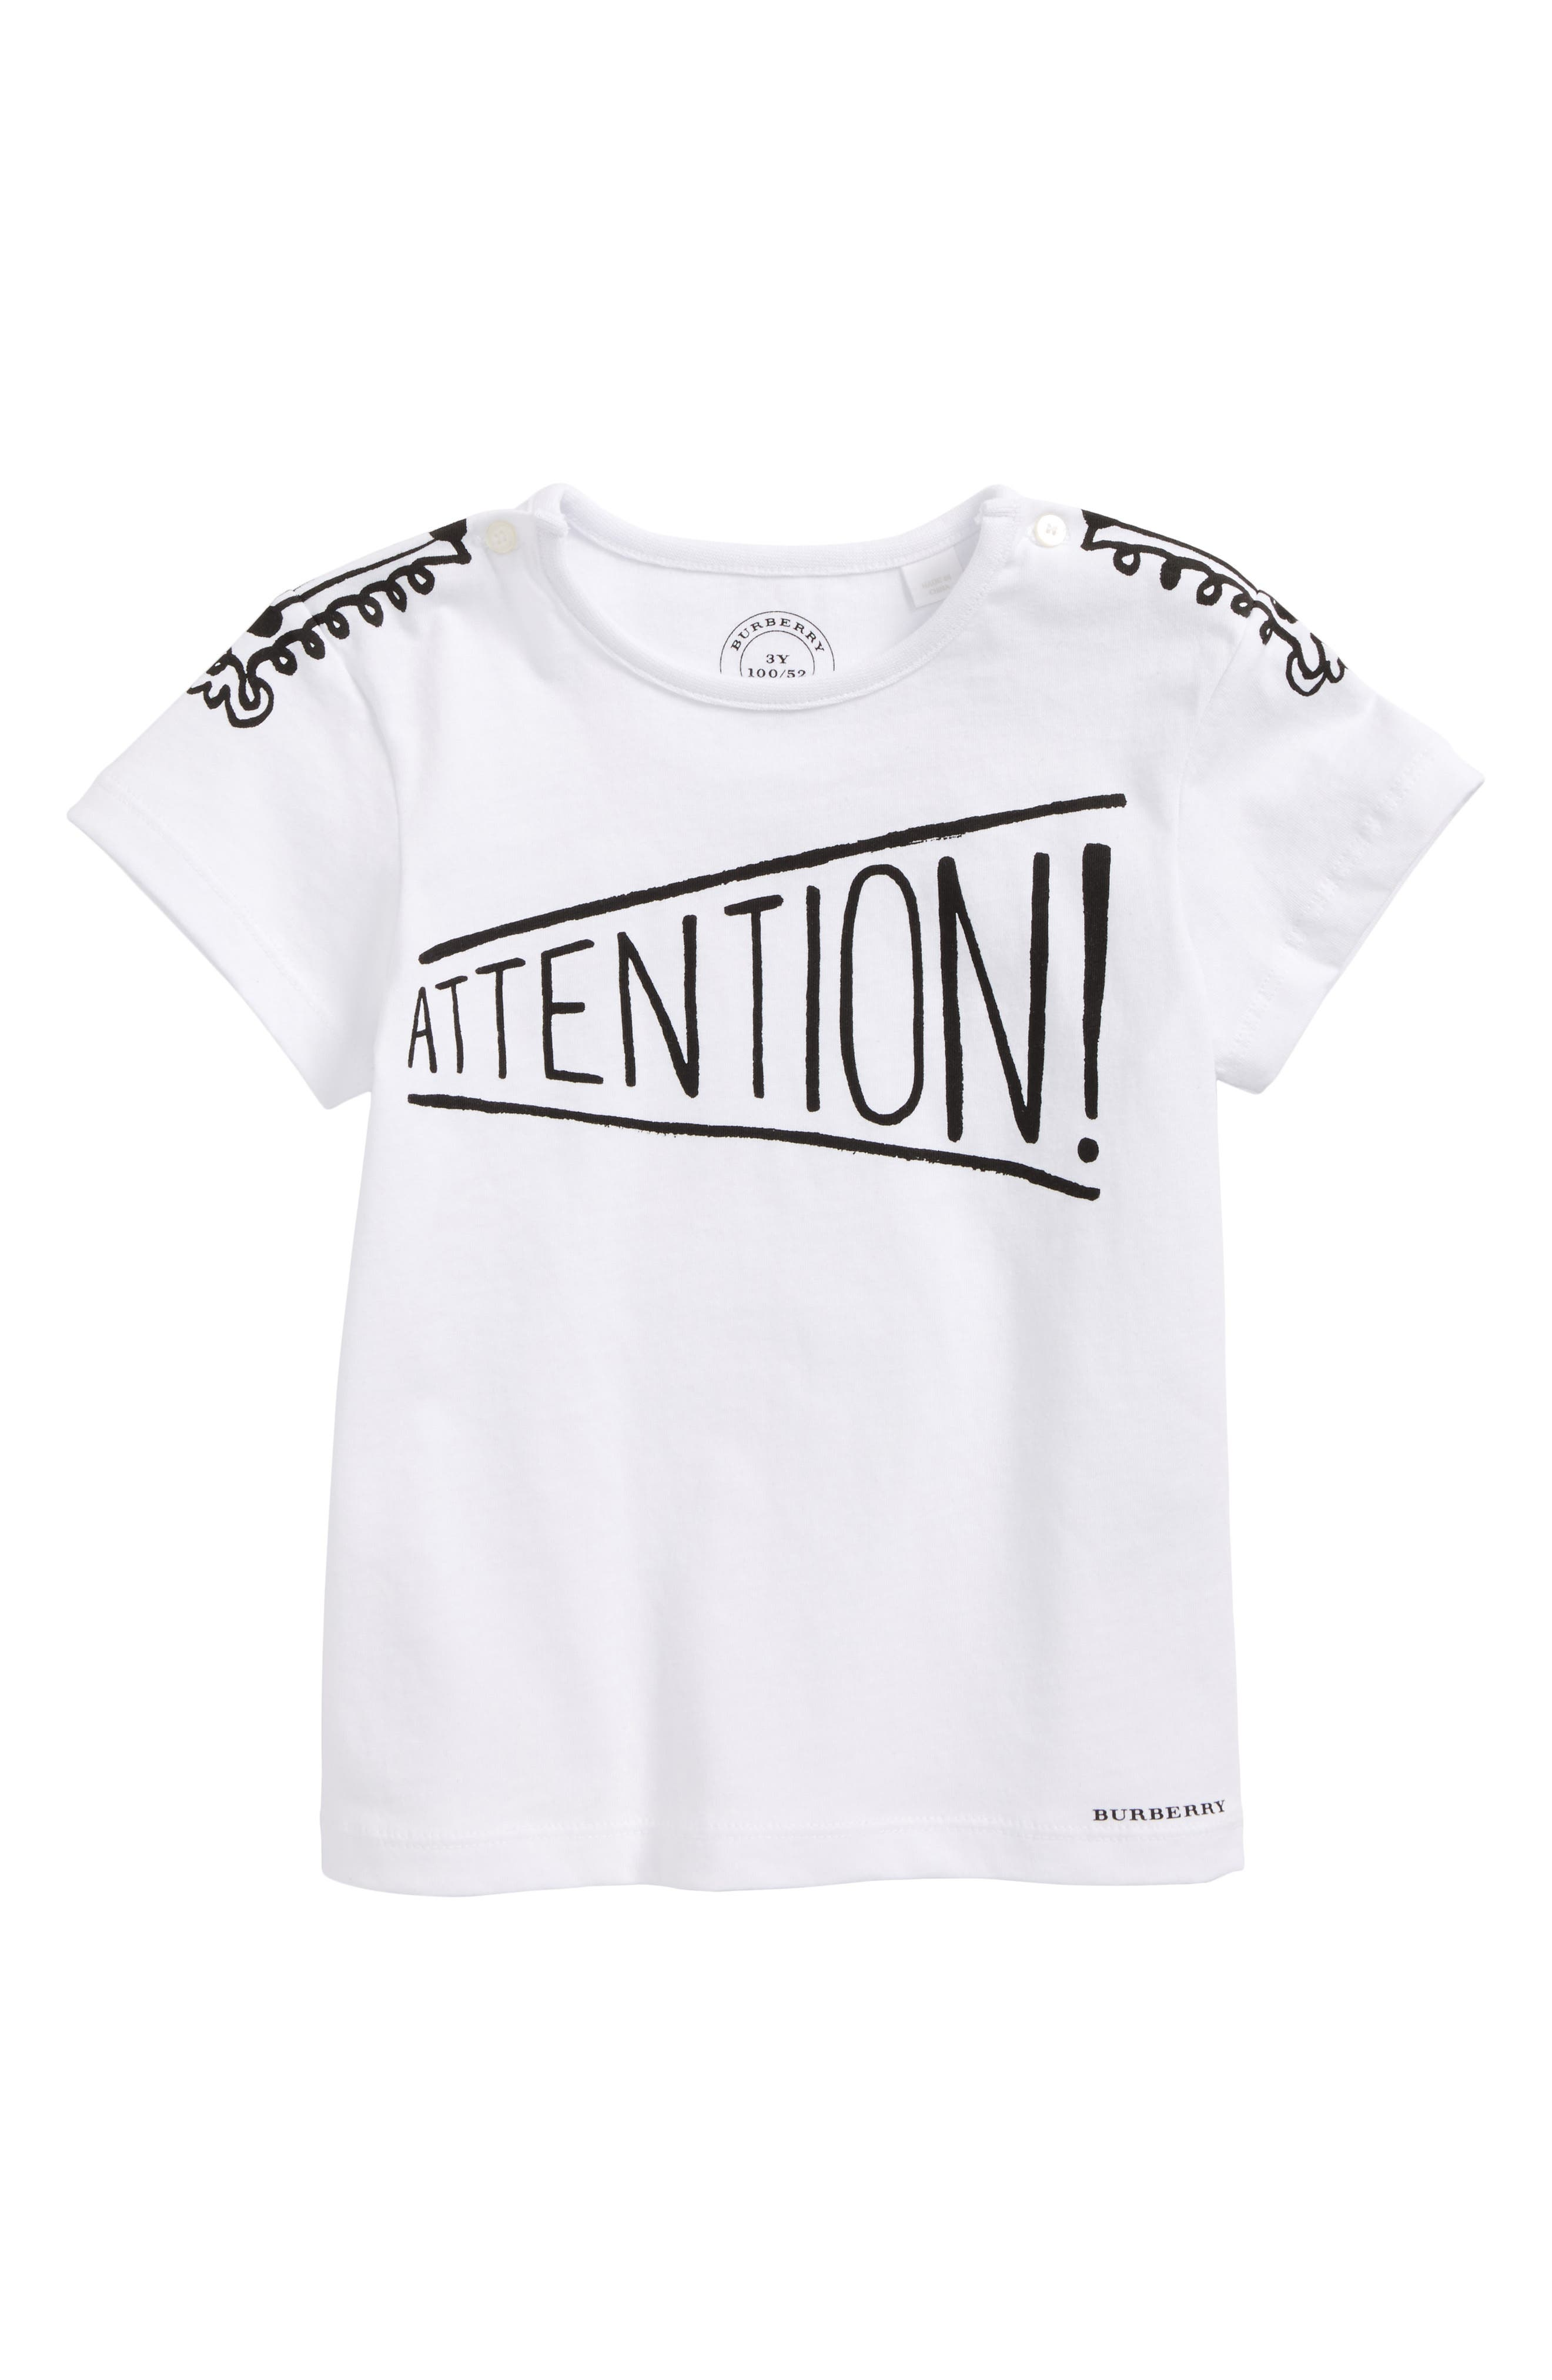 Burberry Attention T-Shirt (Toddler Boys)